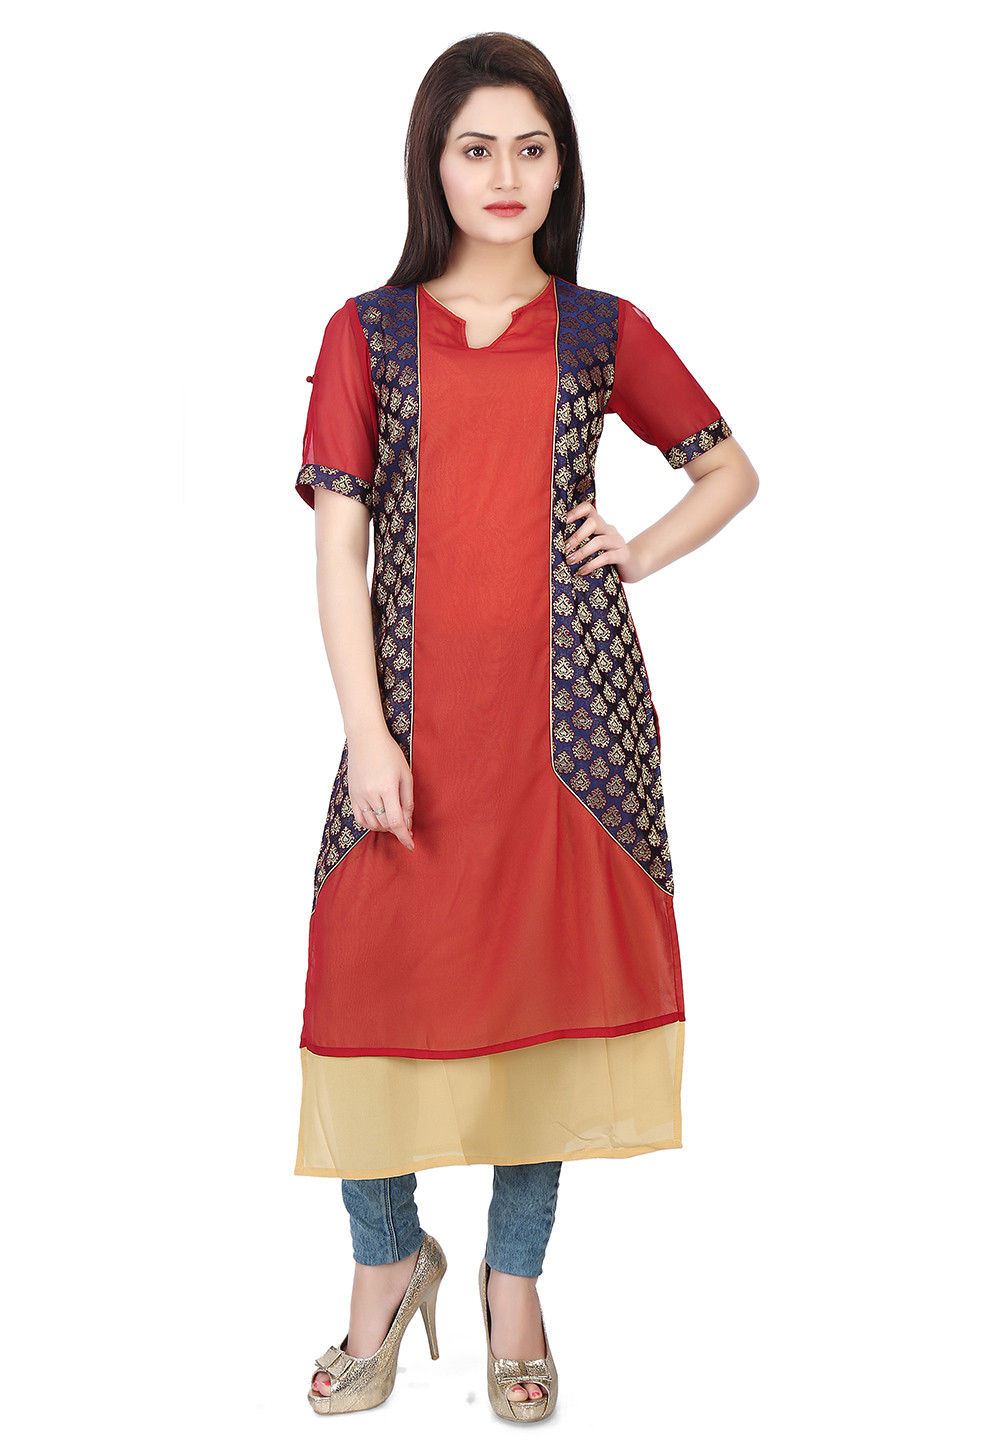 Woven Georgette and Brocade Jacket Style Long Kurta in Red and Blue